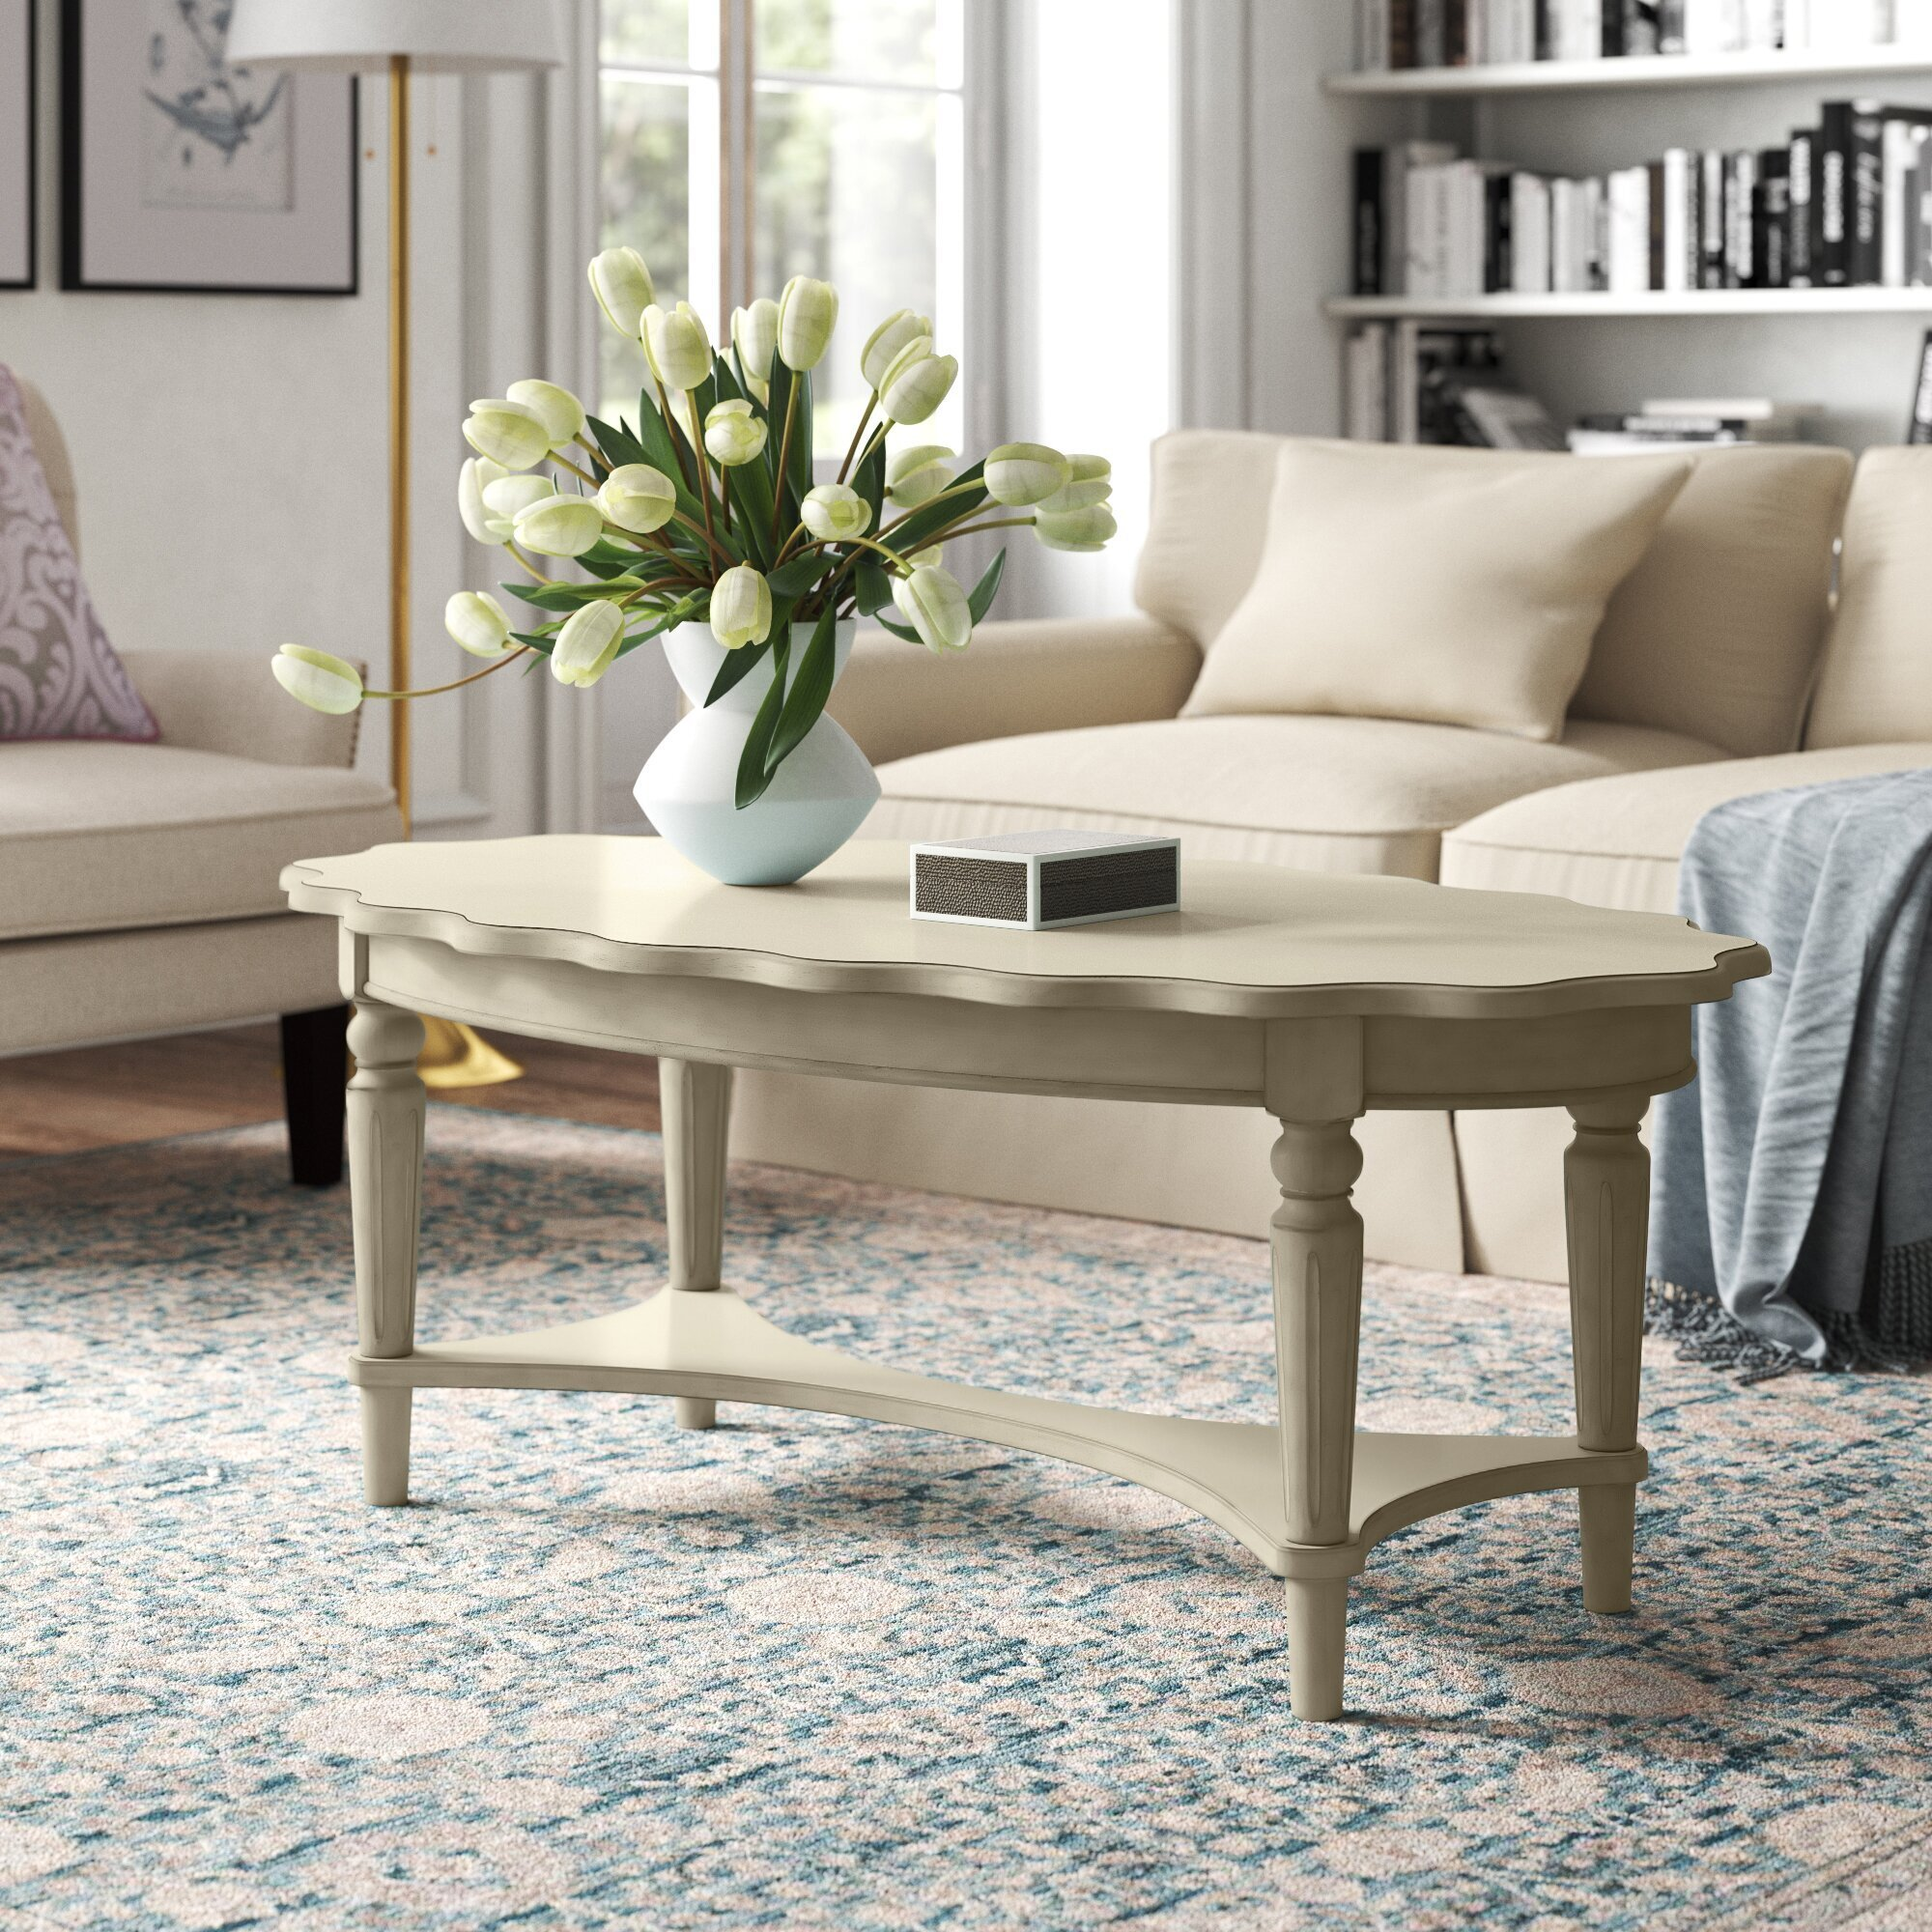 Kelly Clarkson Home Solid Wood Coffee Table with Storage